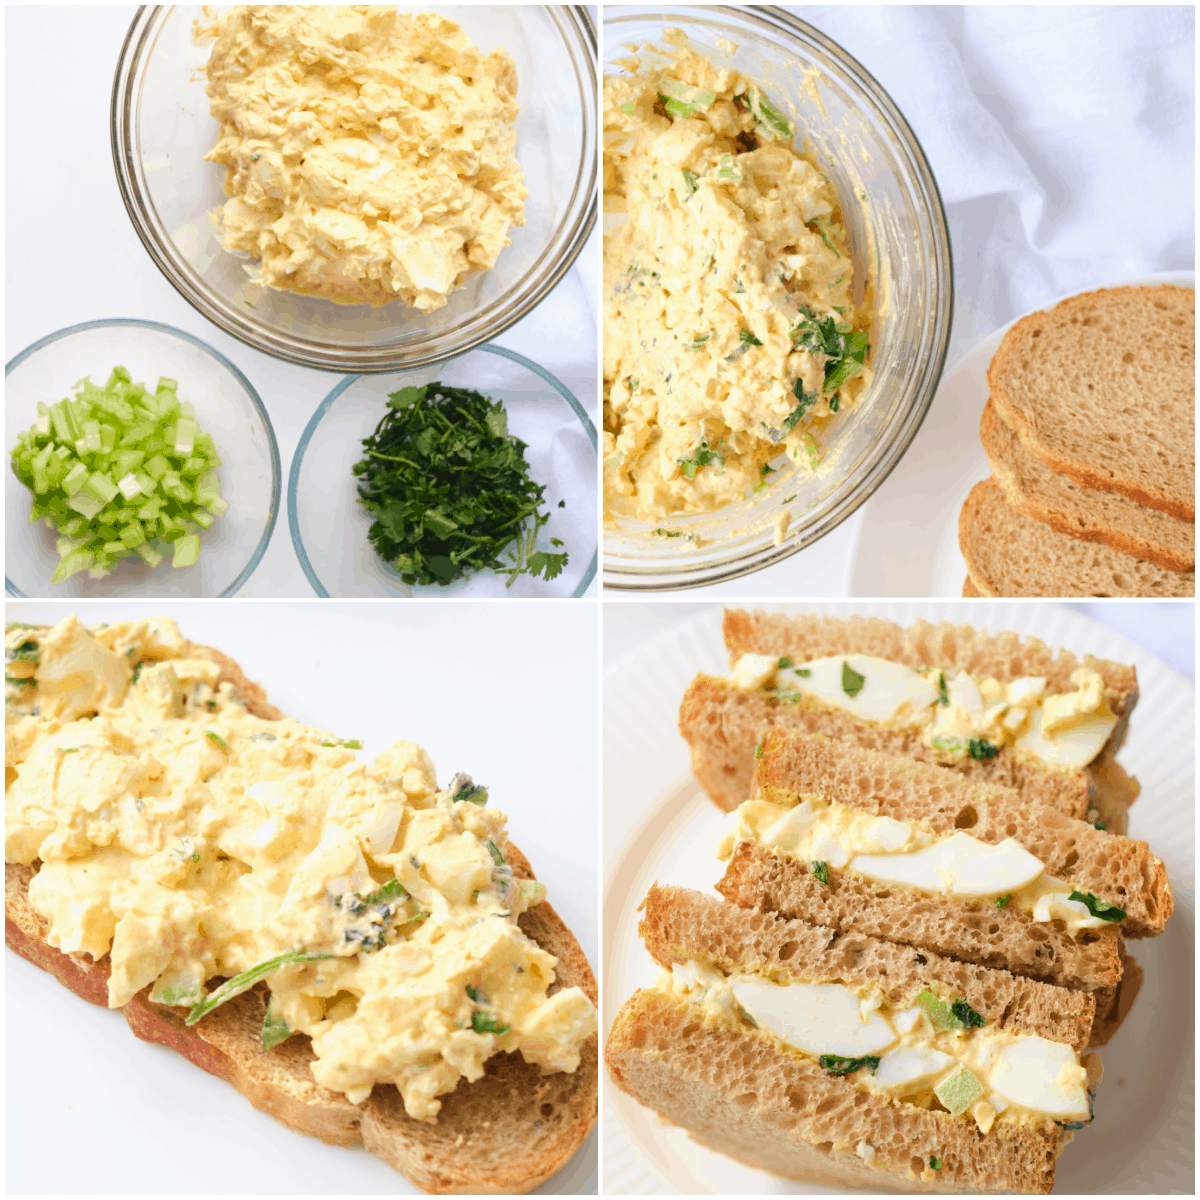 image collage showing the steps for making egg salad sandwich